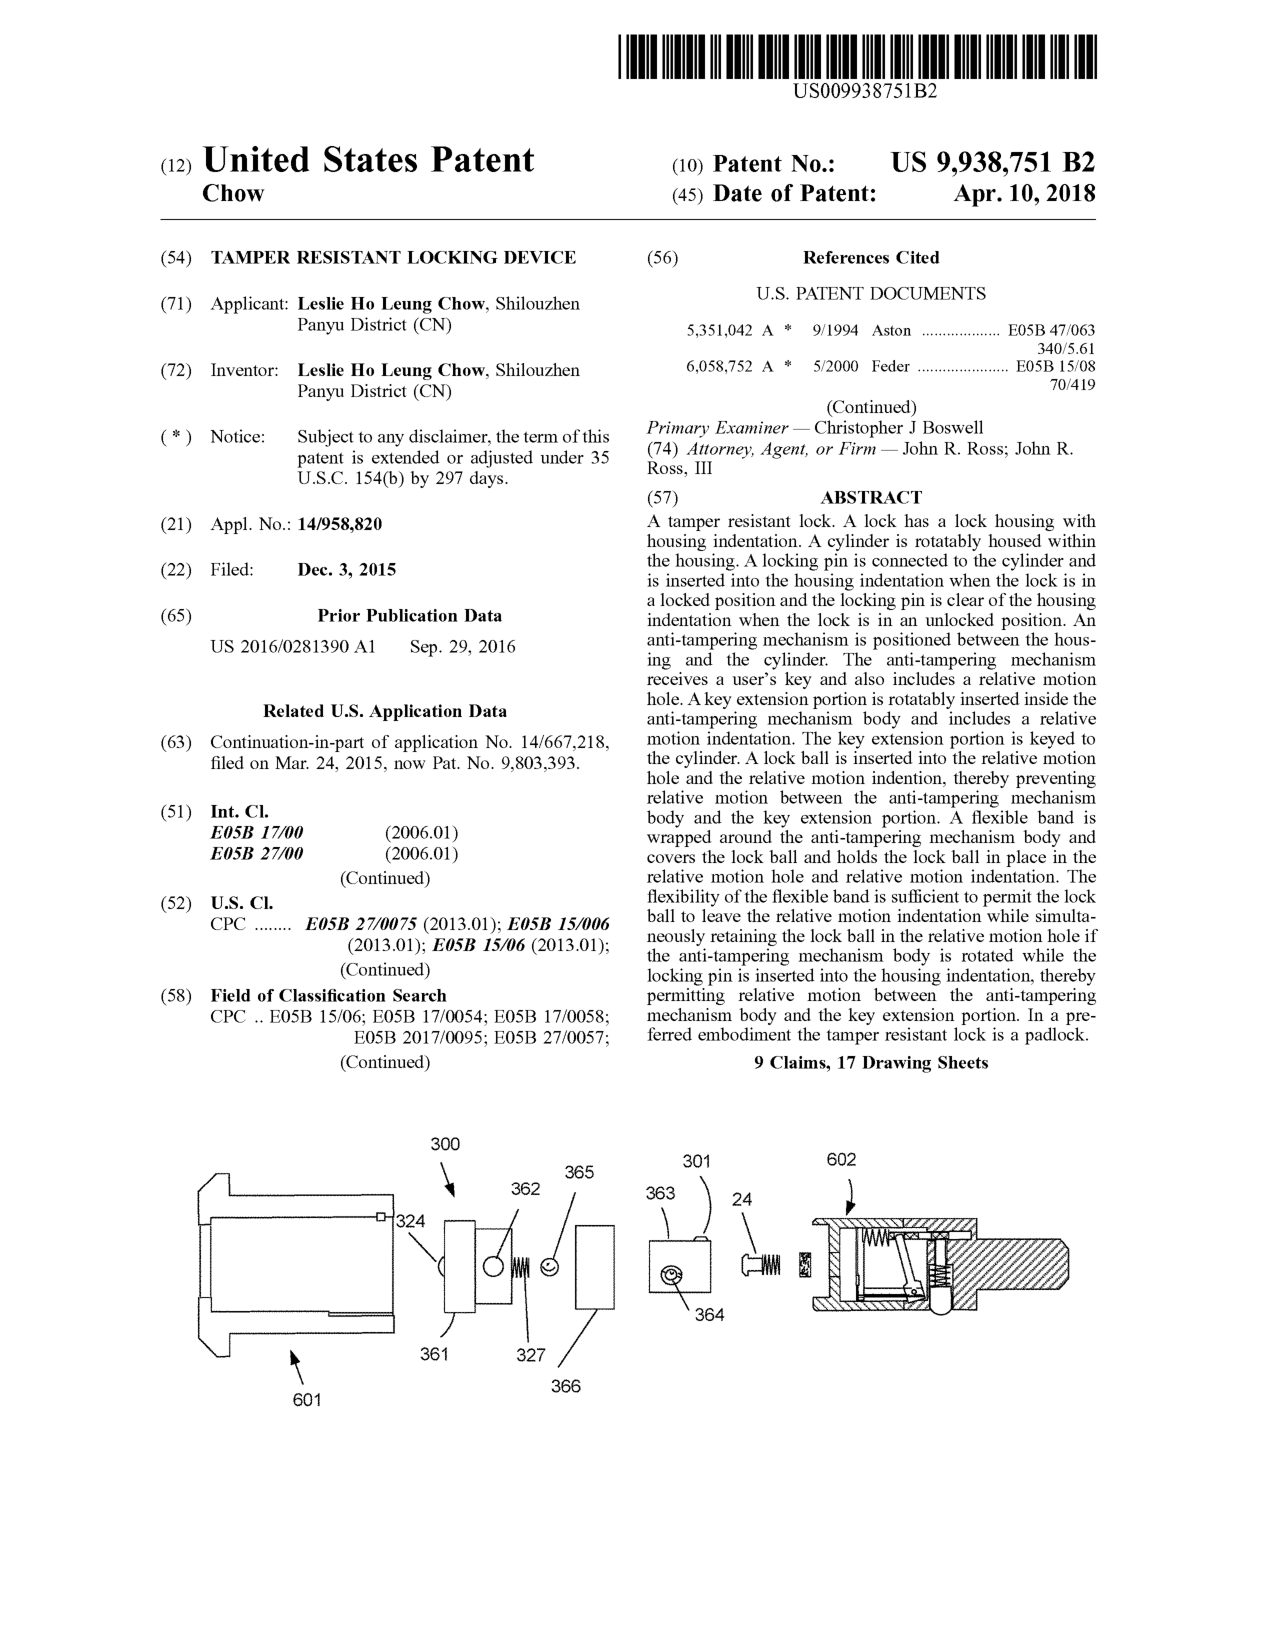 Tamper Resistant Locking Device